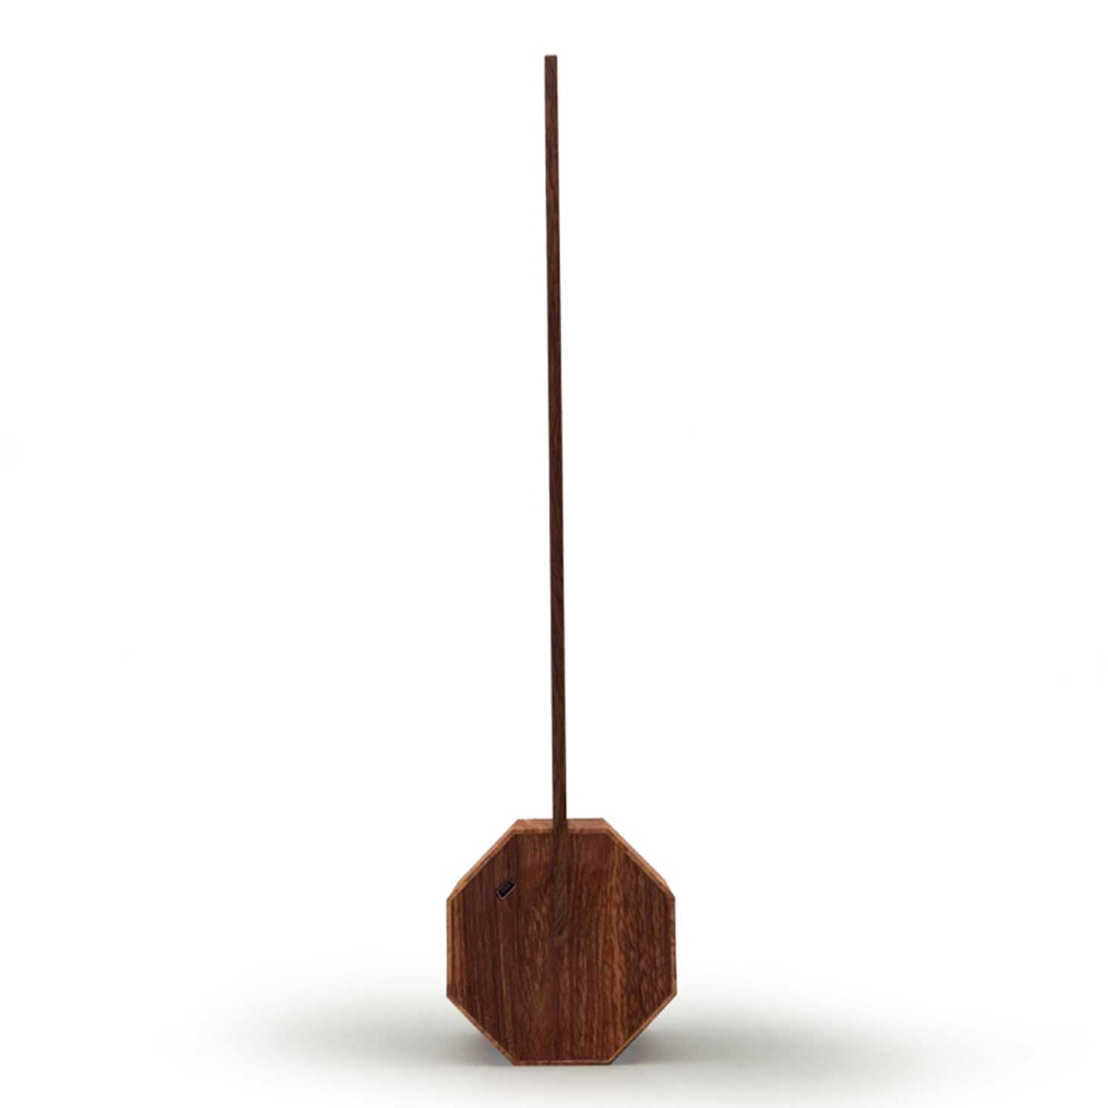 GINKGO Octagon One desk light Walnut | The Design Gift Shop